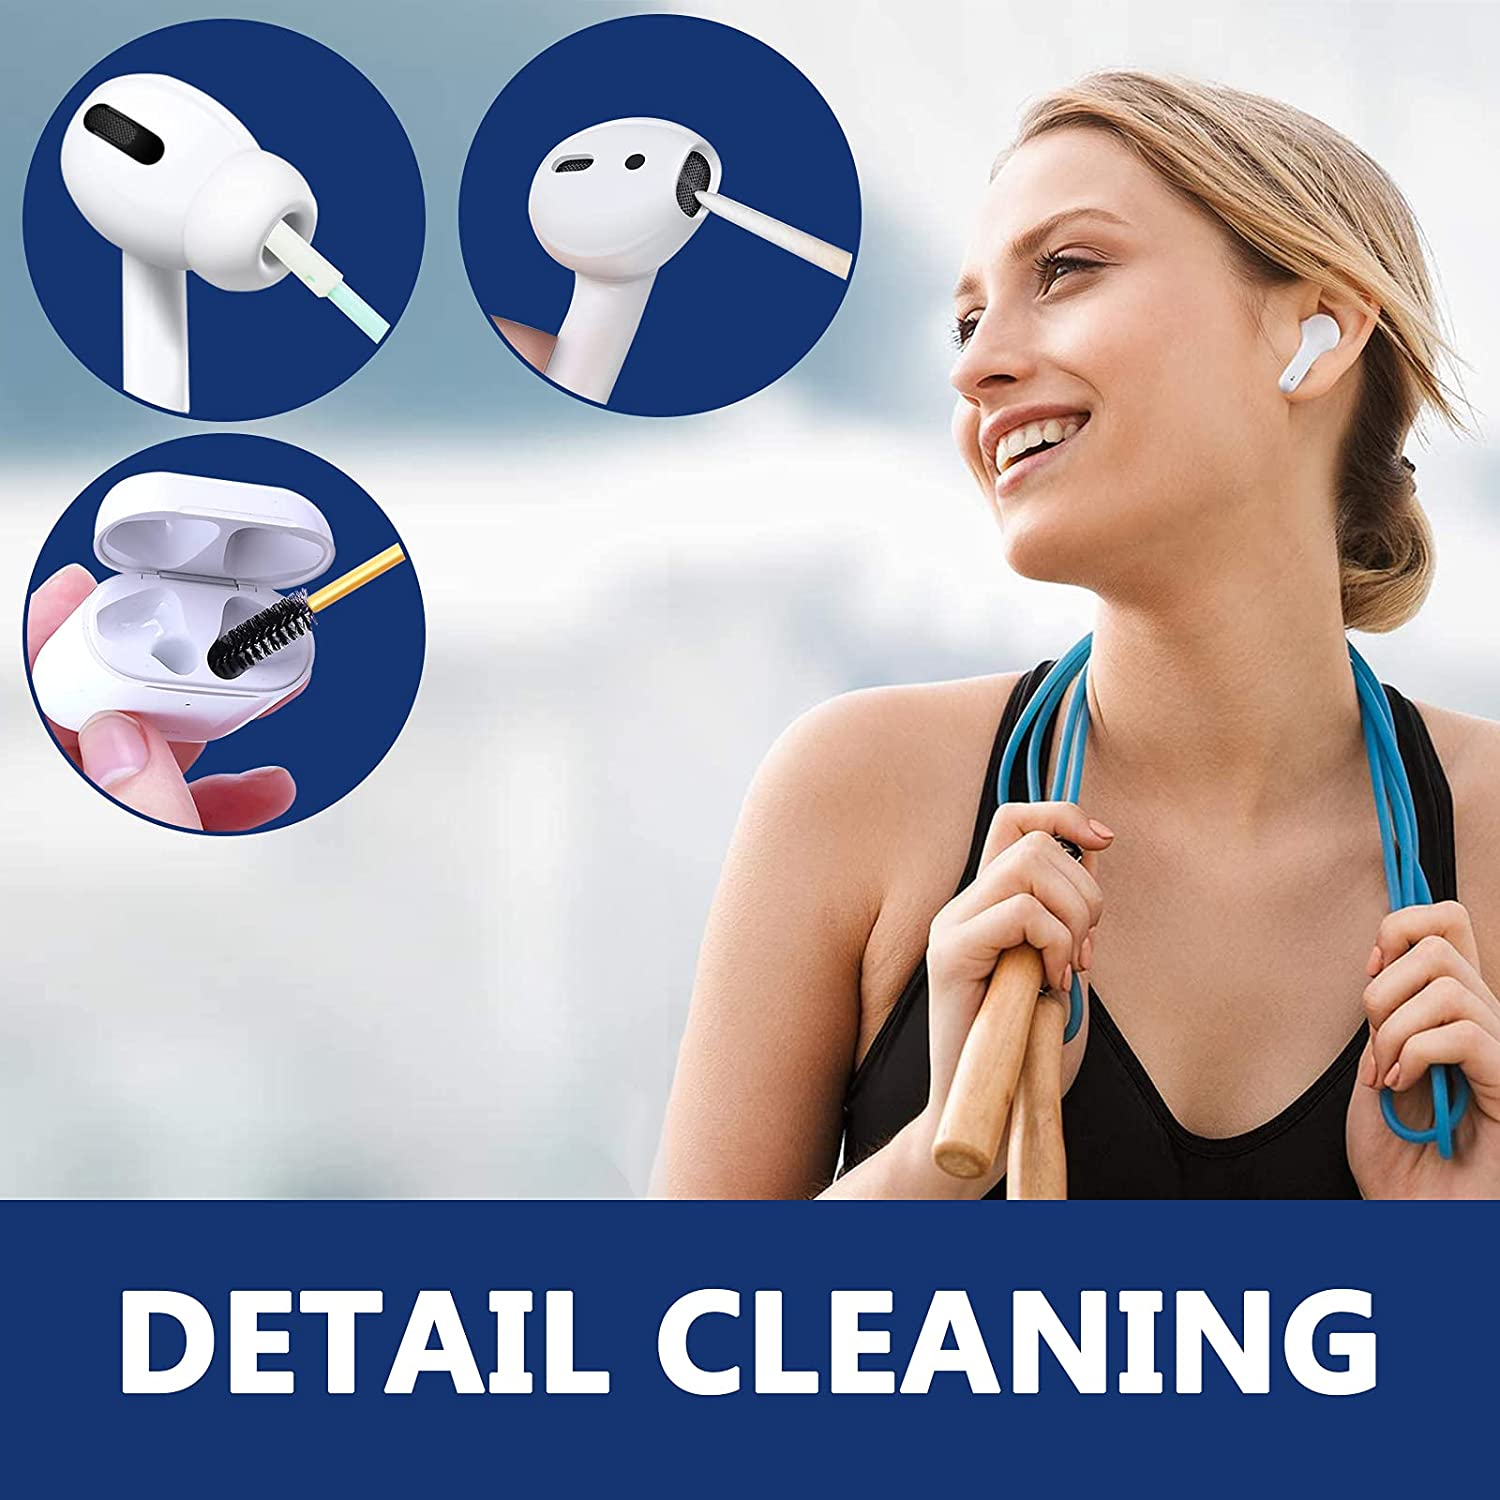 earbuds cleaning guide